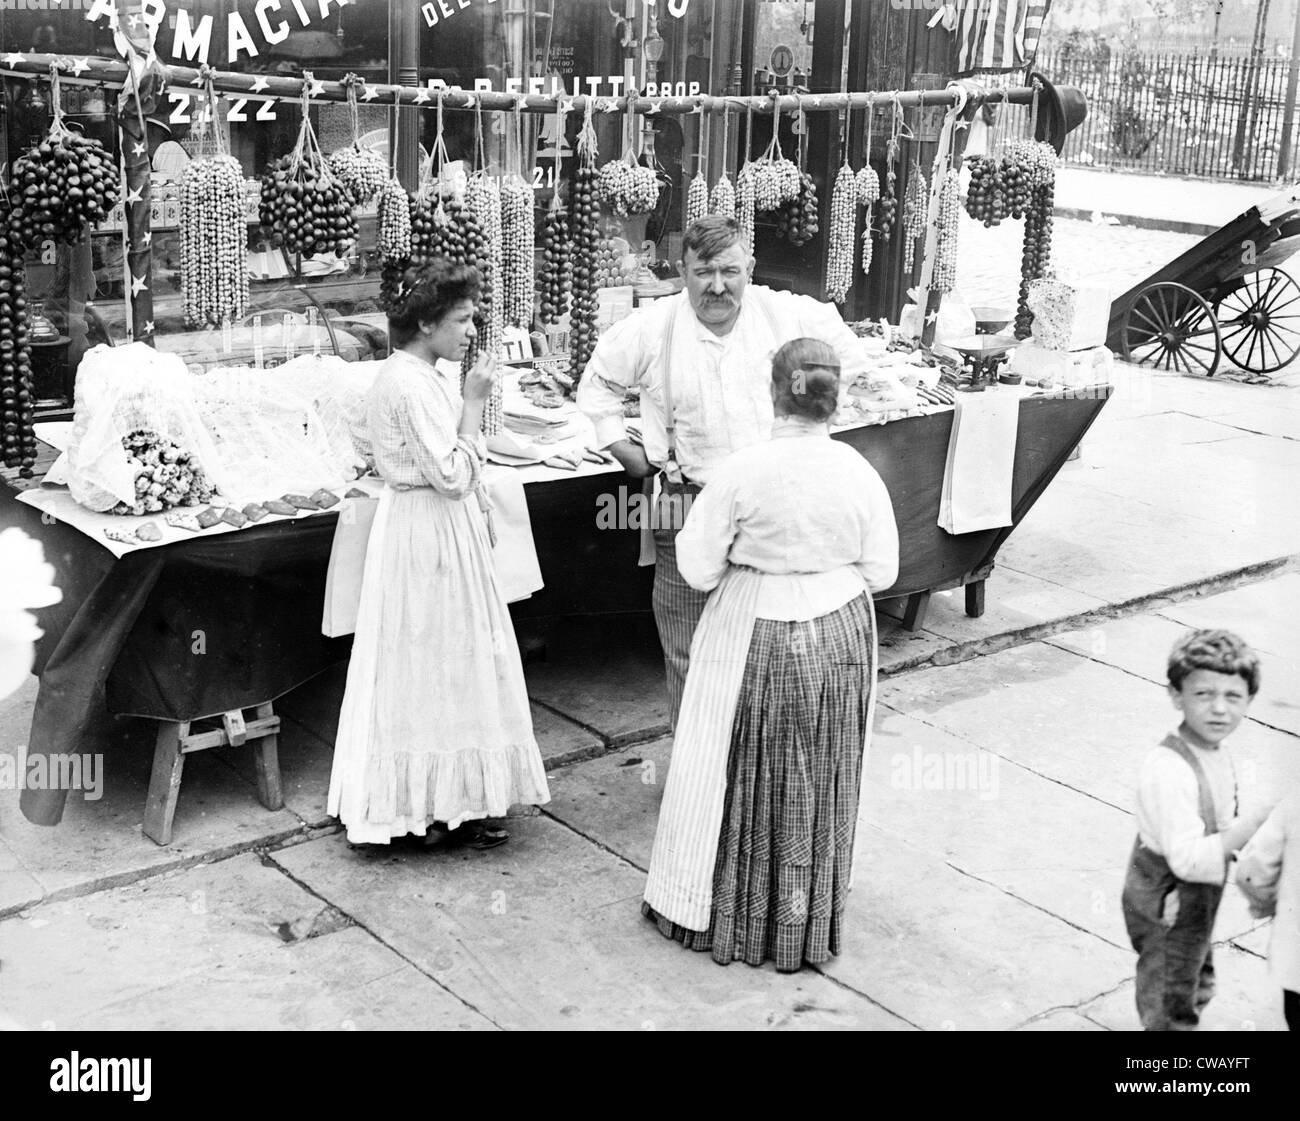 Little Italy - vendor with wares displayed during a festival, New York, ca. 1930s - Stock Image